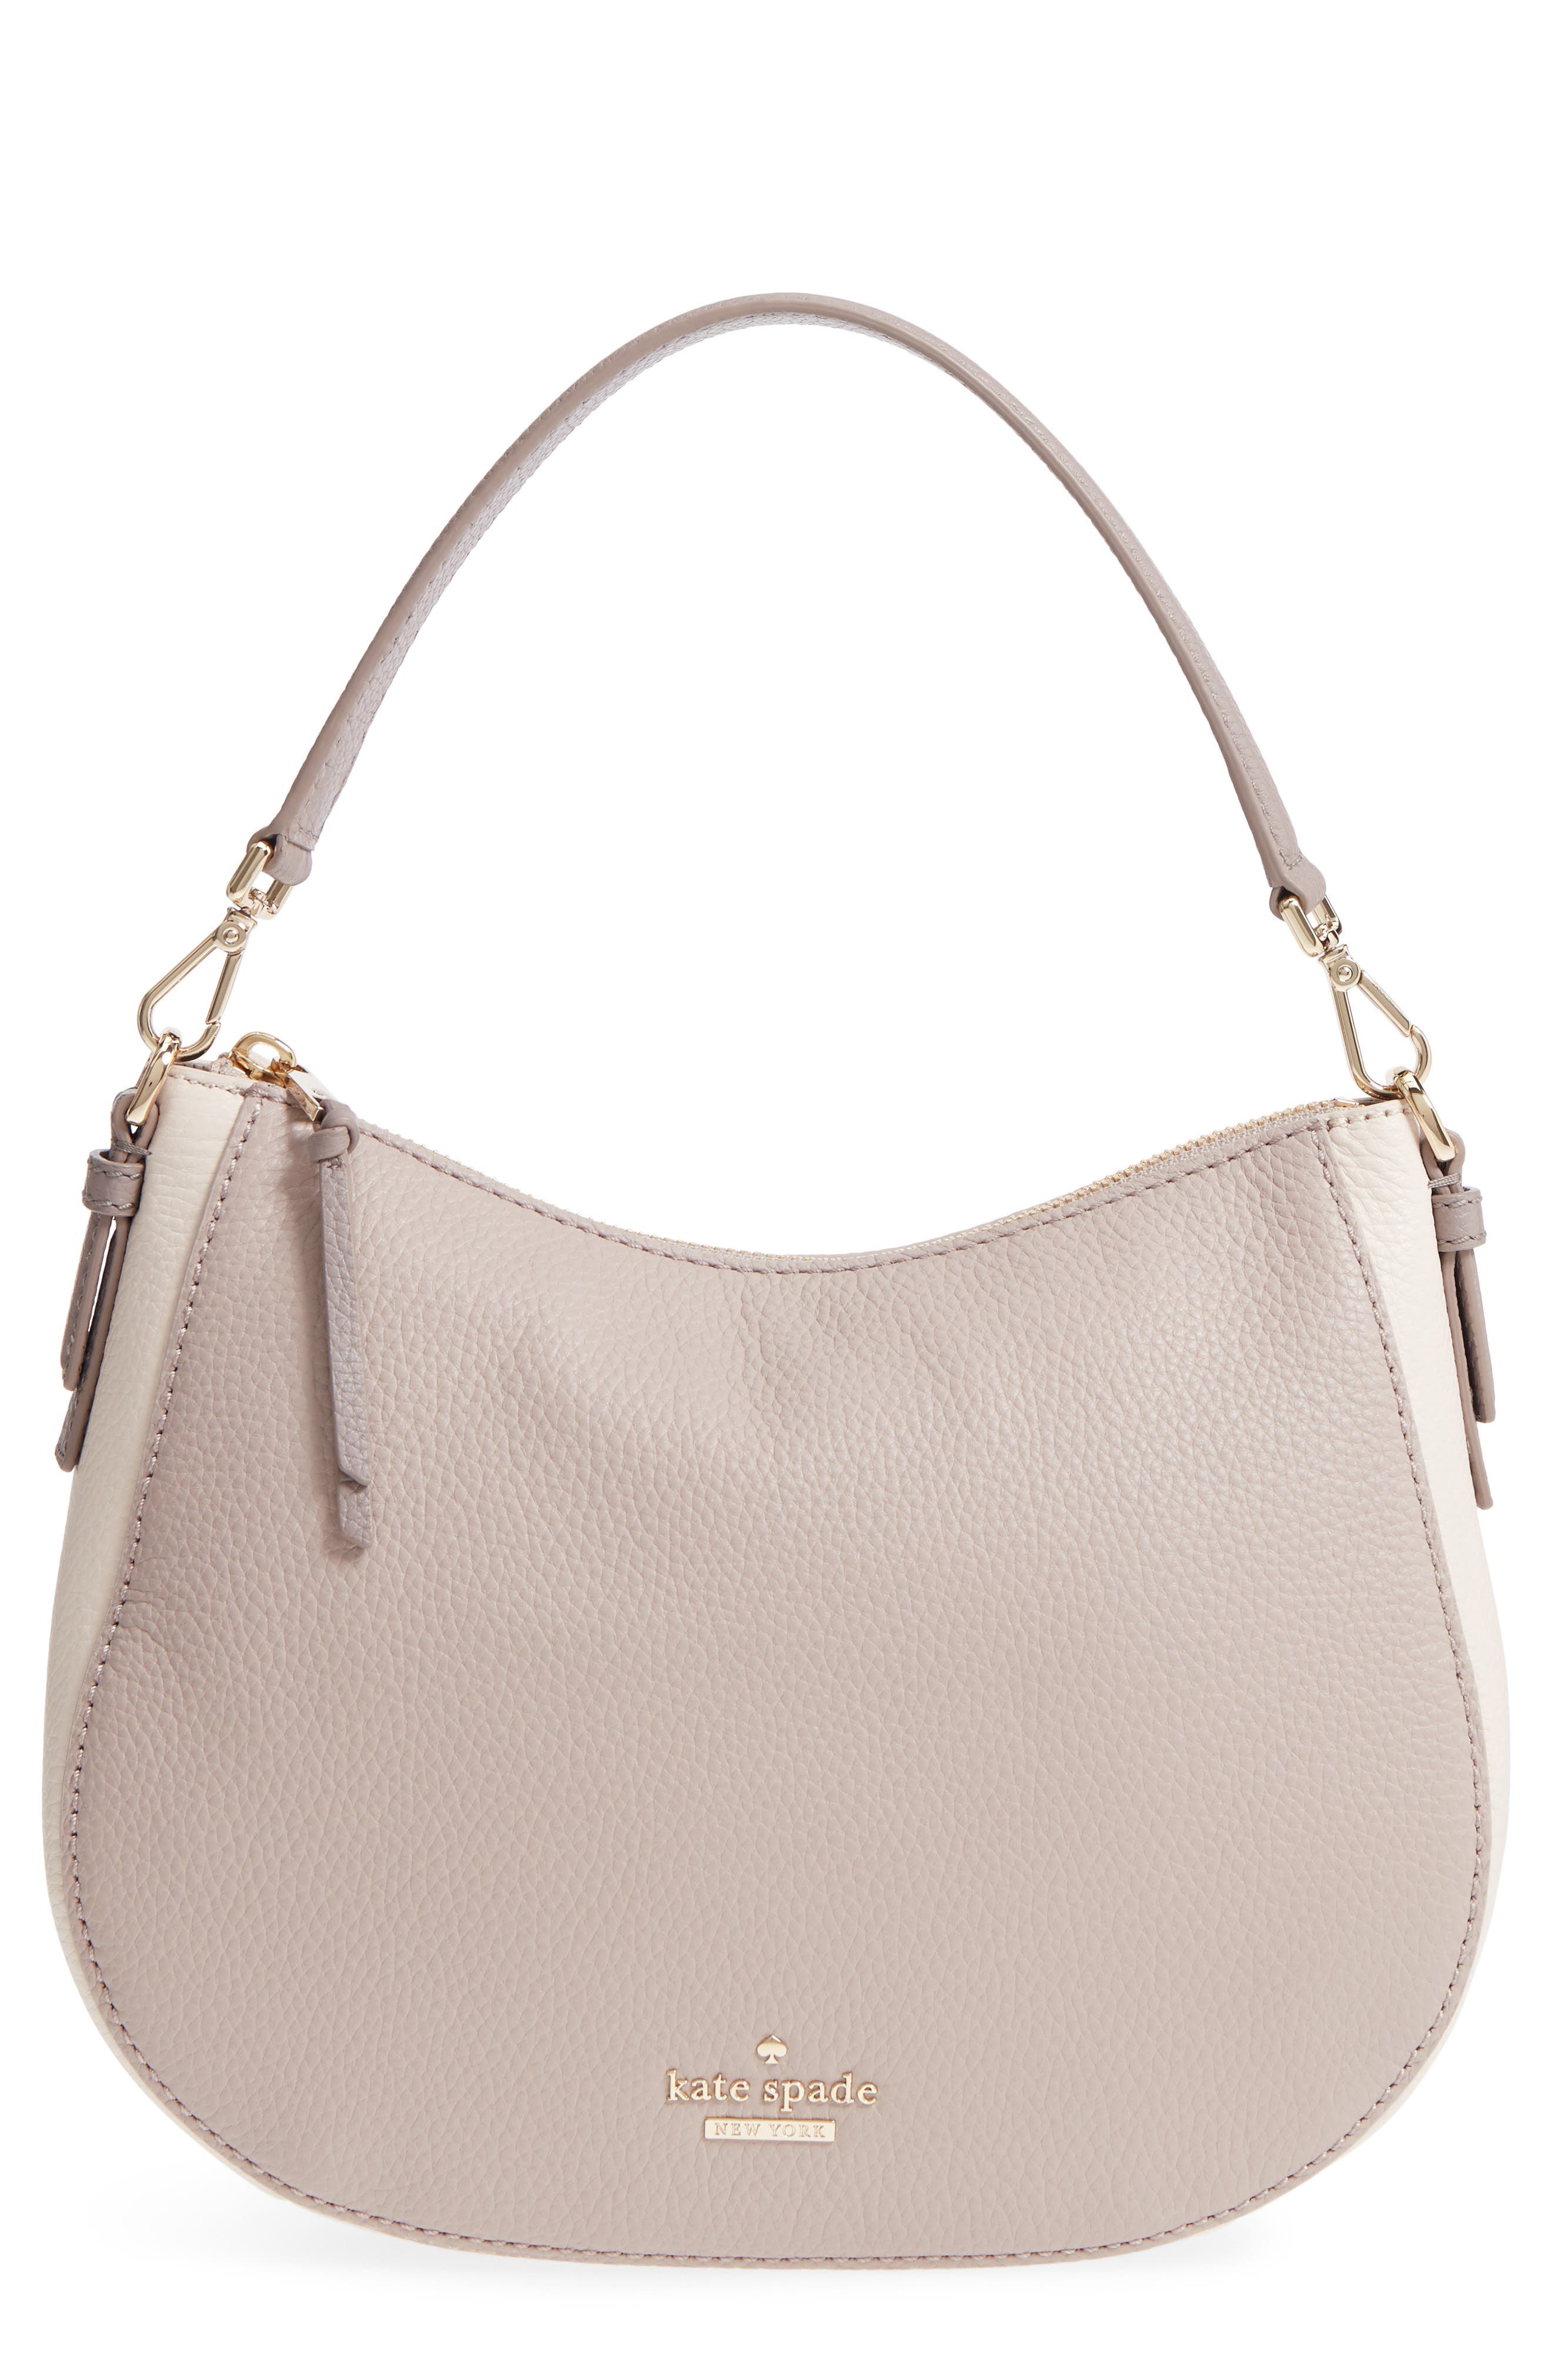 jackson street small mylie leather hobo,                         Main,                         color, 100